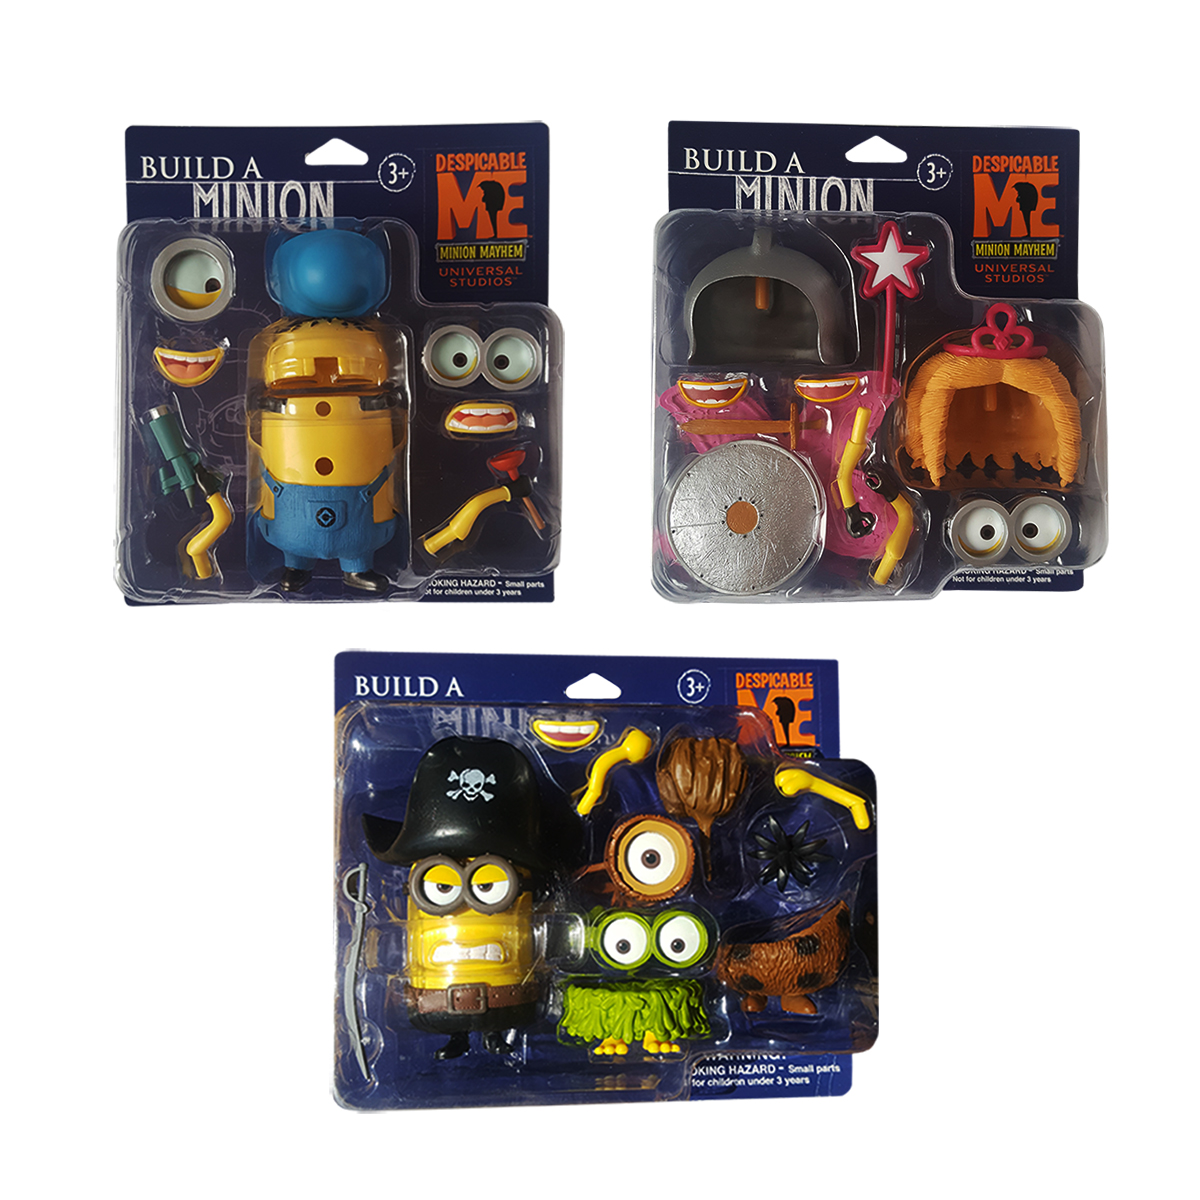 "Despicable Me Minion Mayhem Build A Minion 4"" Universal Studios Figure Gift set by"